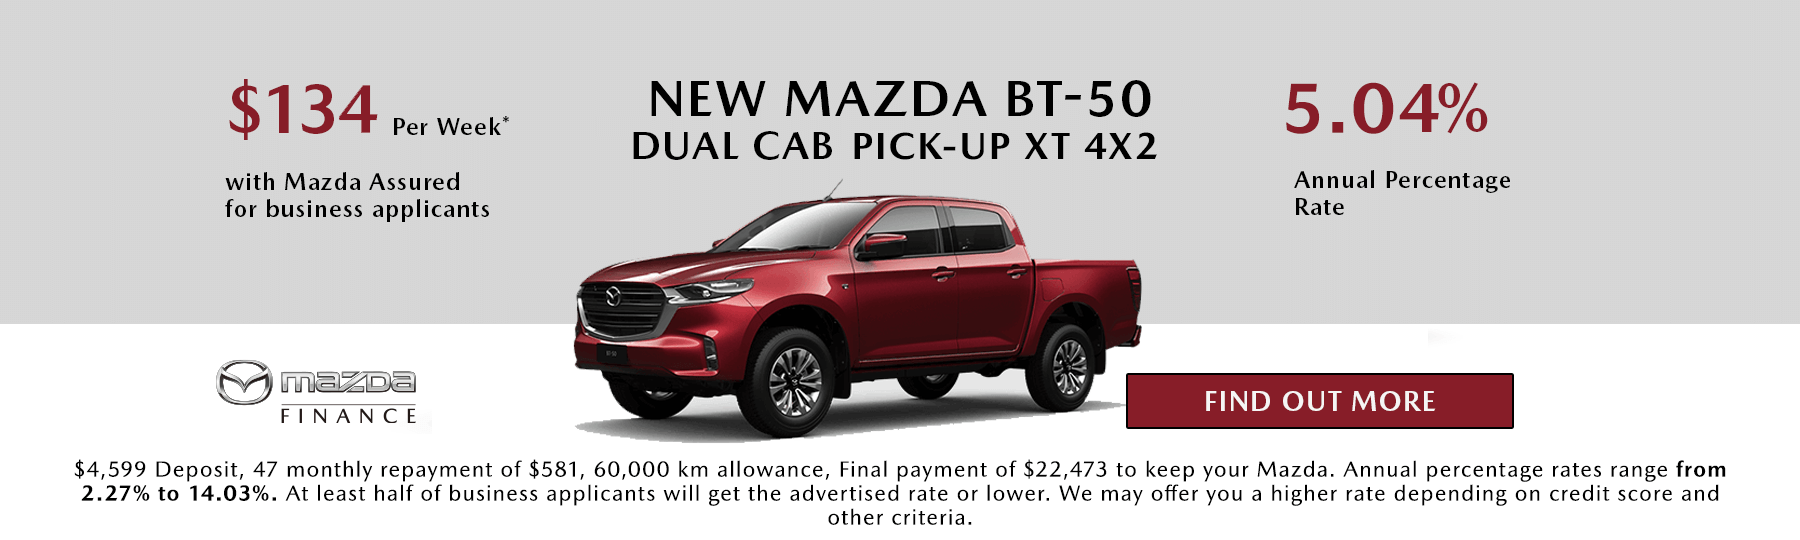 New Mazda BT-50 Dual Cab Chassis 4x2